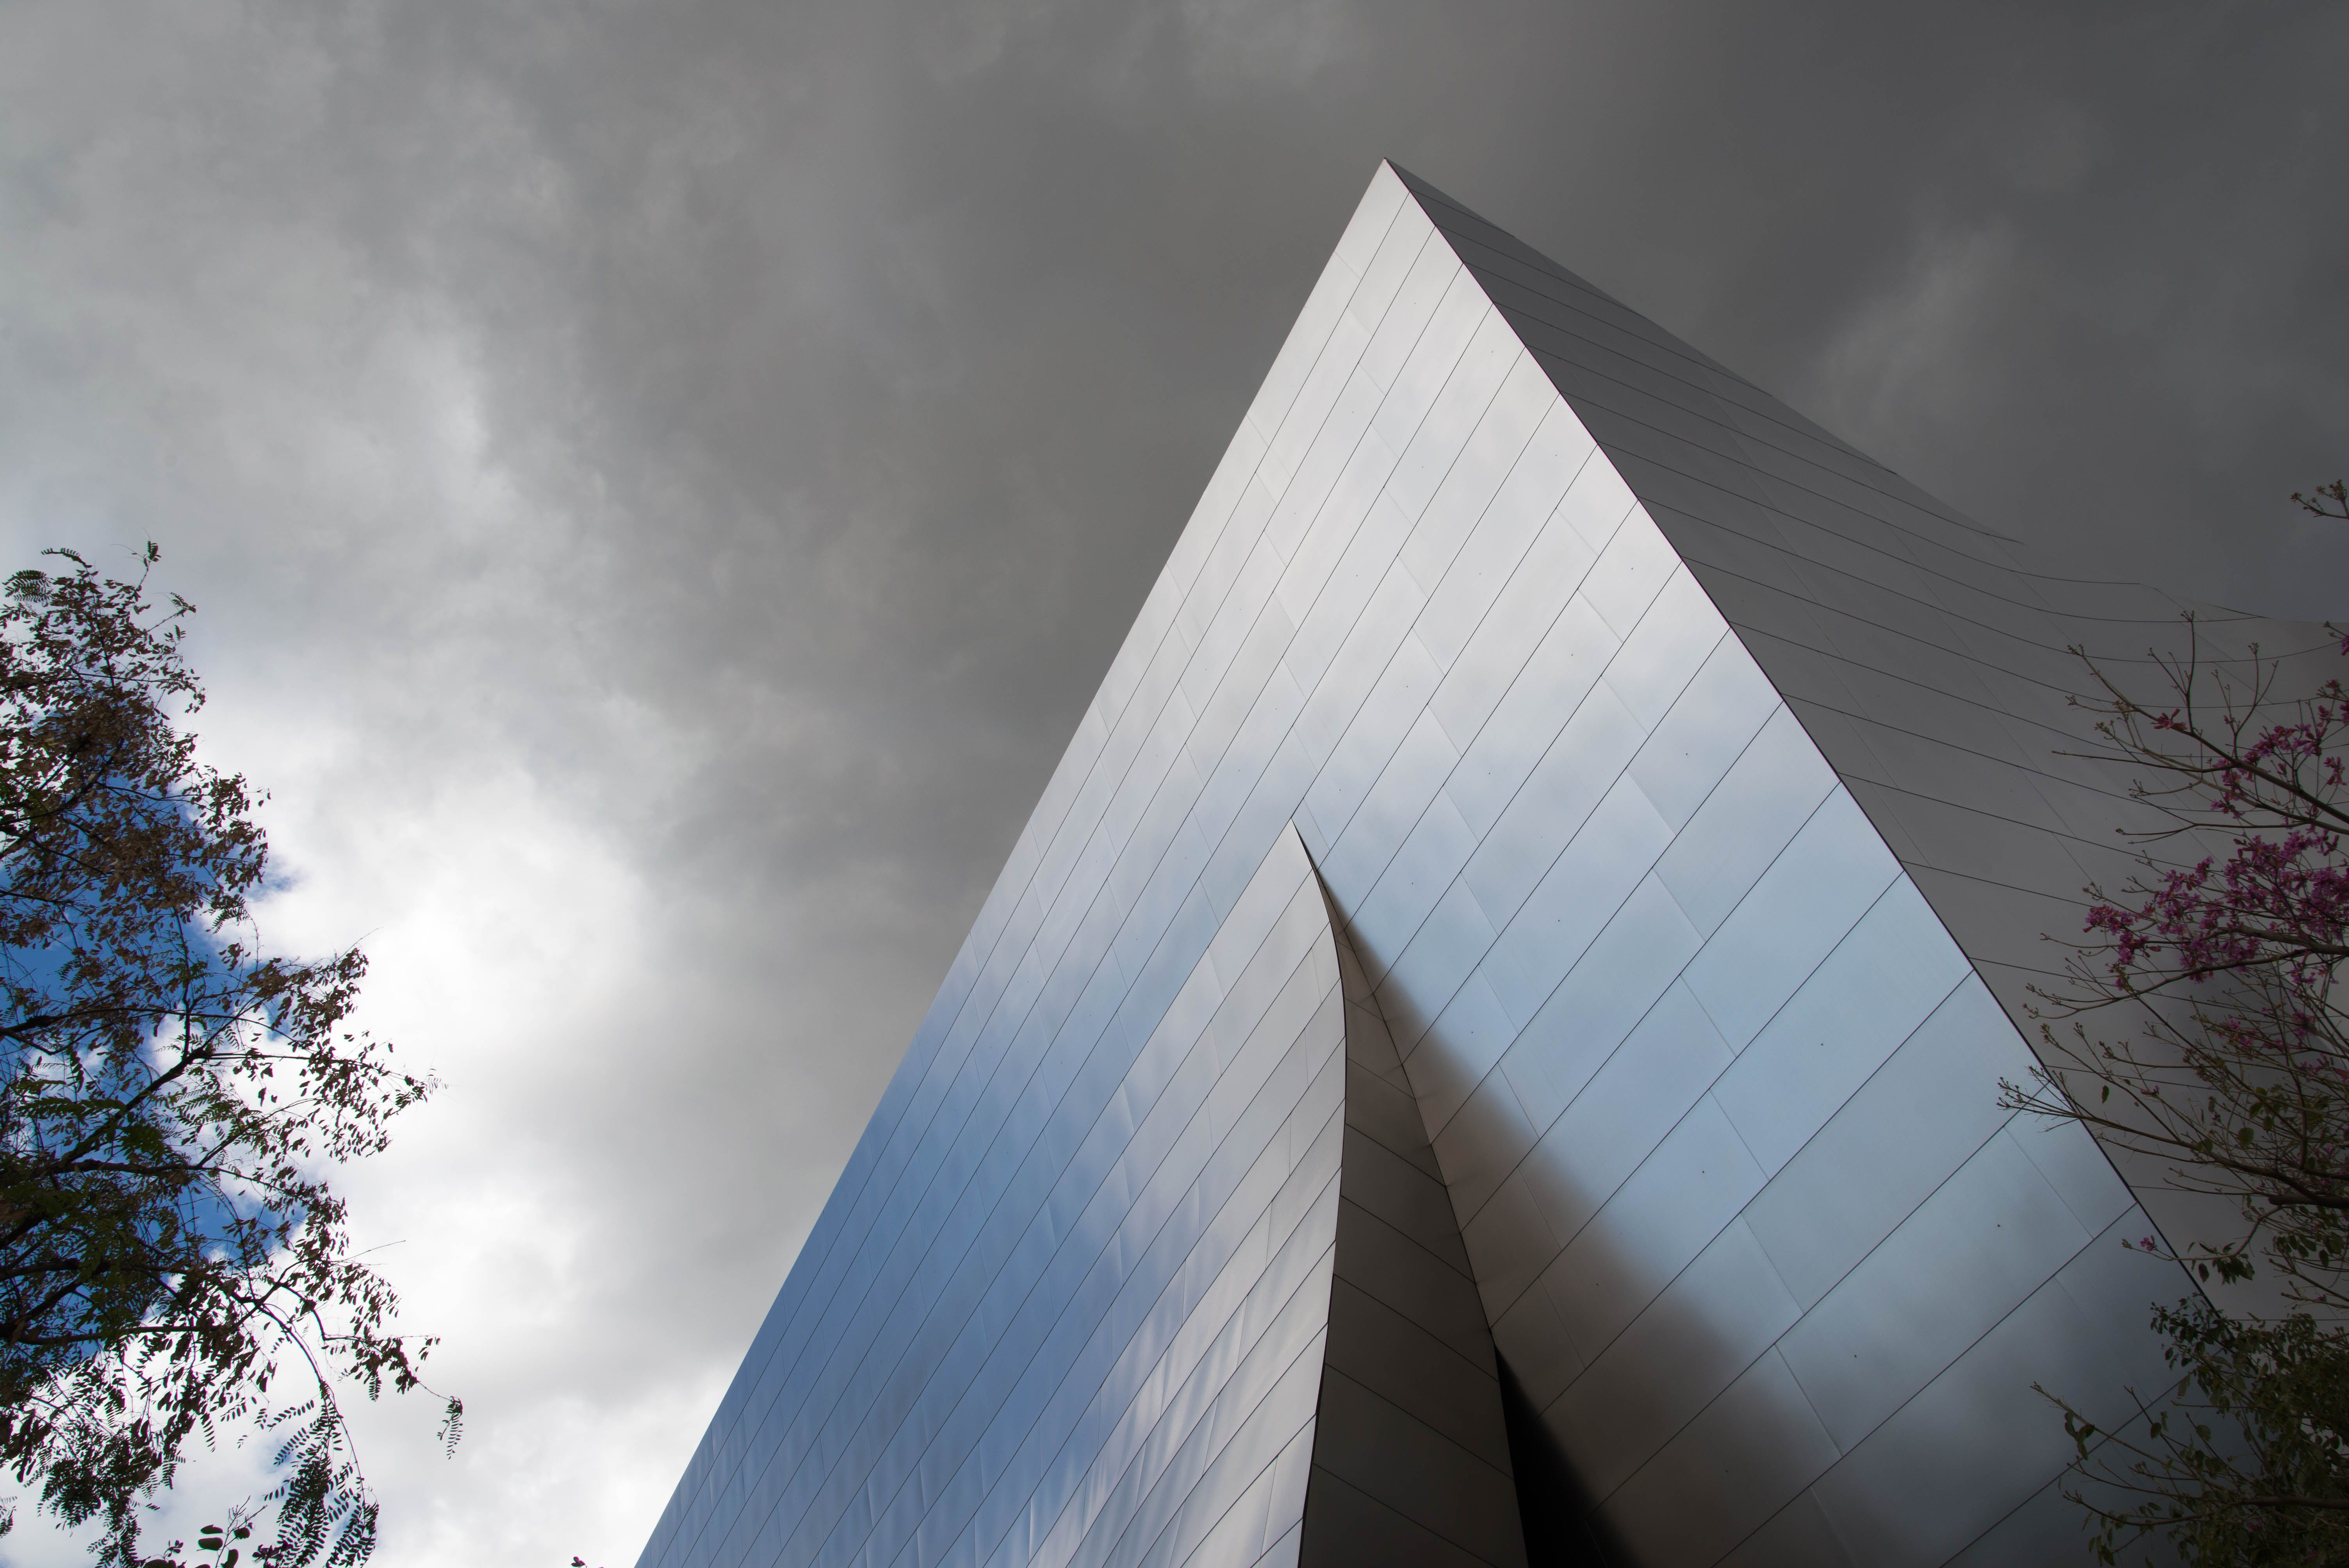 Low-angle Photography of Gray Concrete Building Under Cloudy Sky